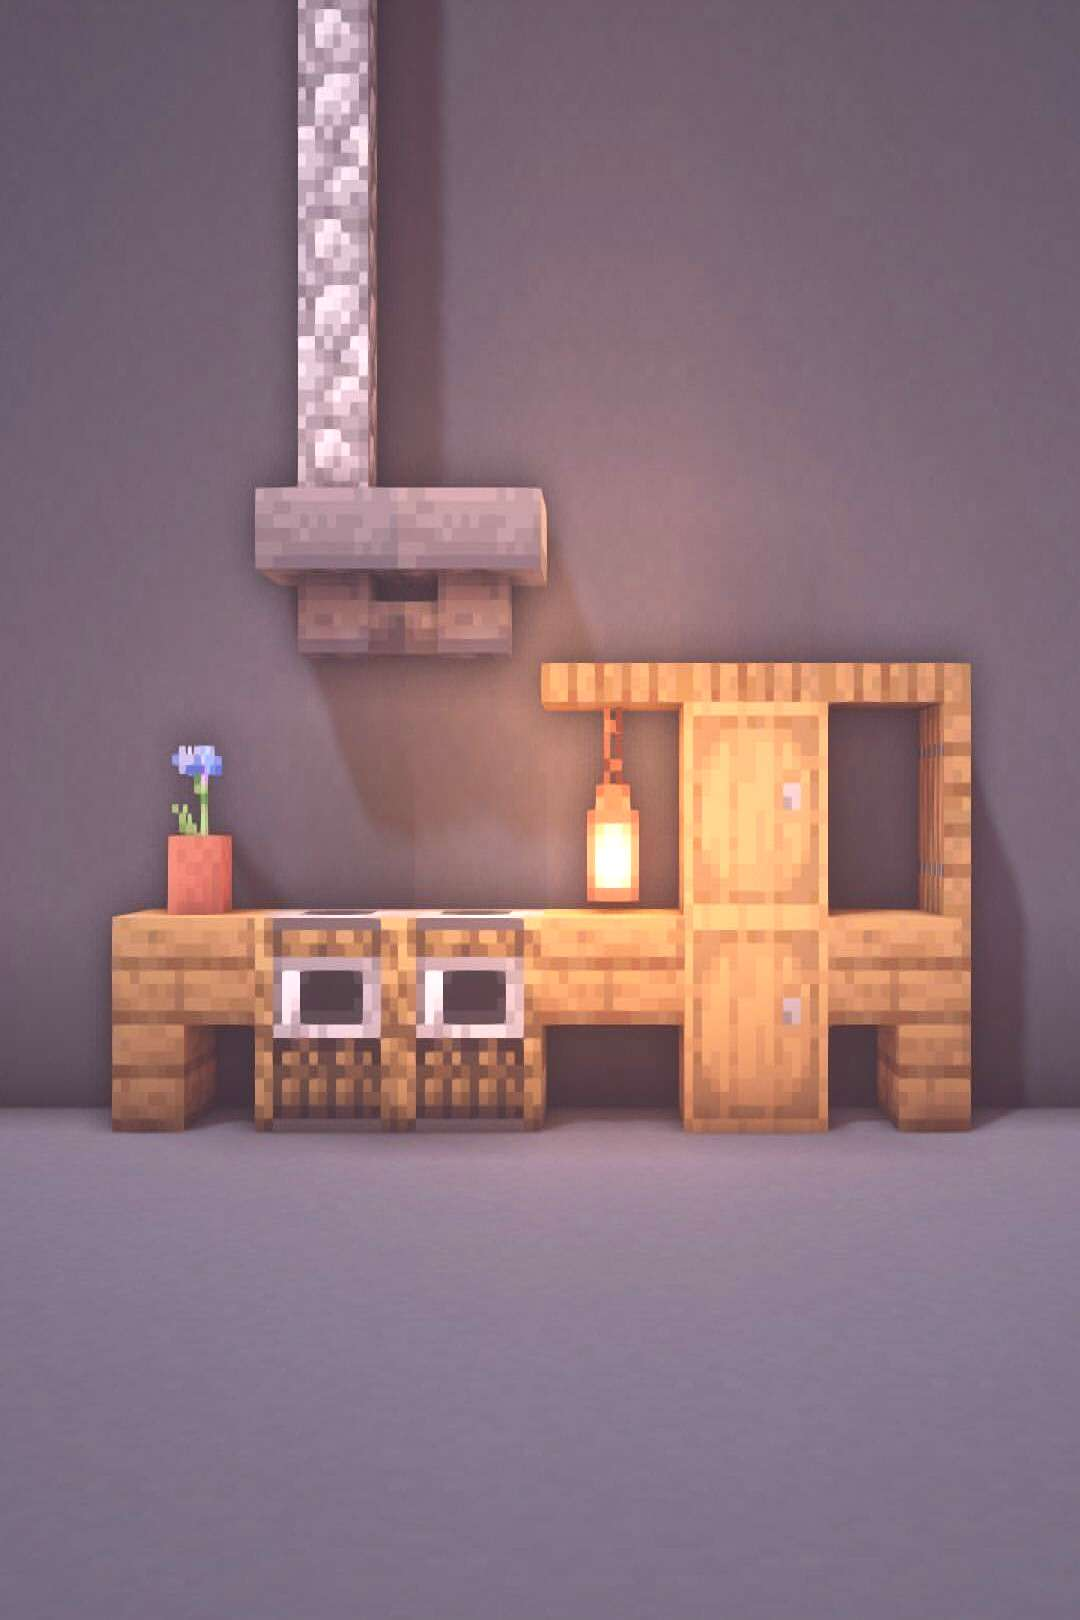 """Typface on Instagram: """"Continuing with the survival designs, here's a fully functional kitchen."""